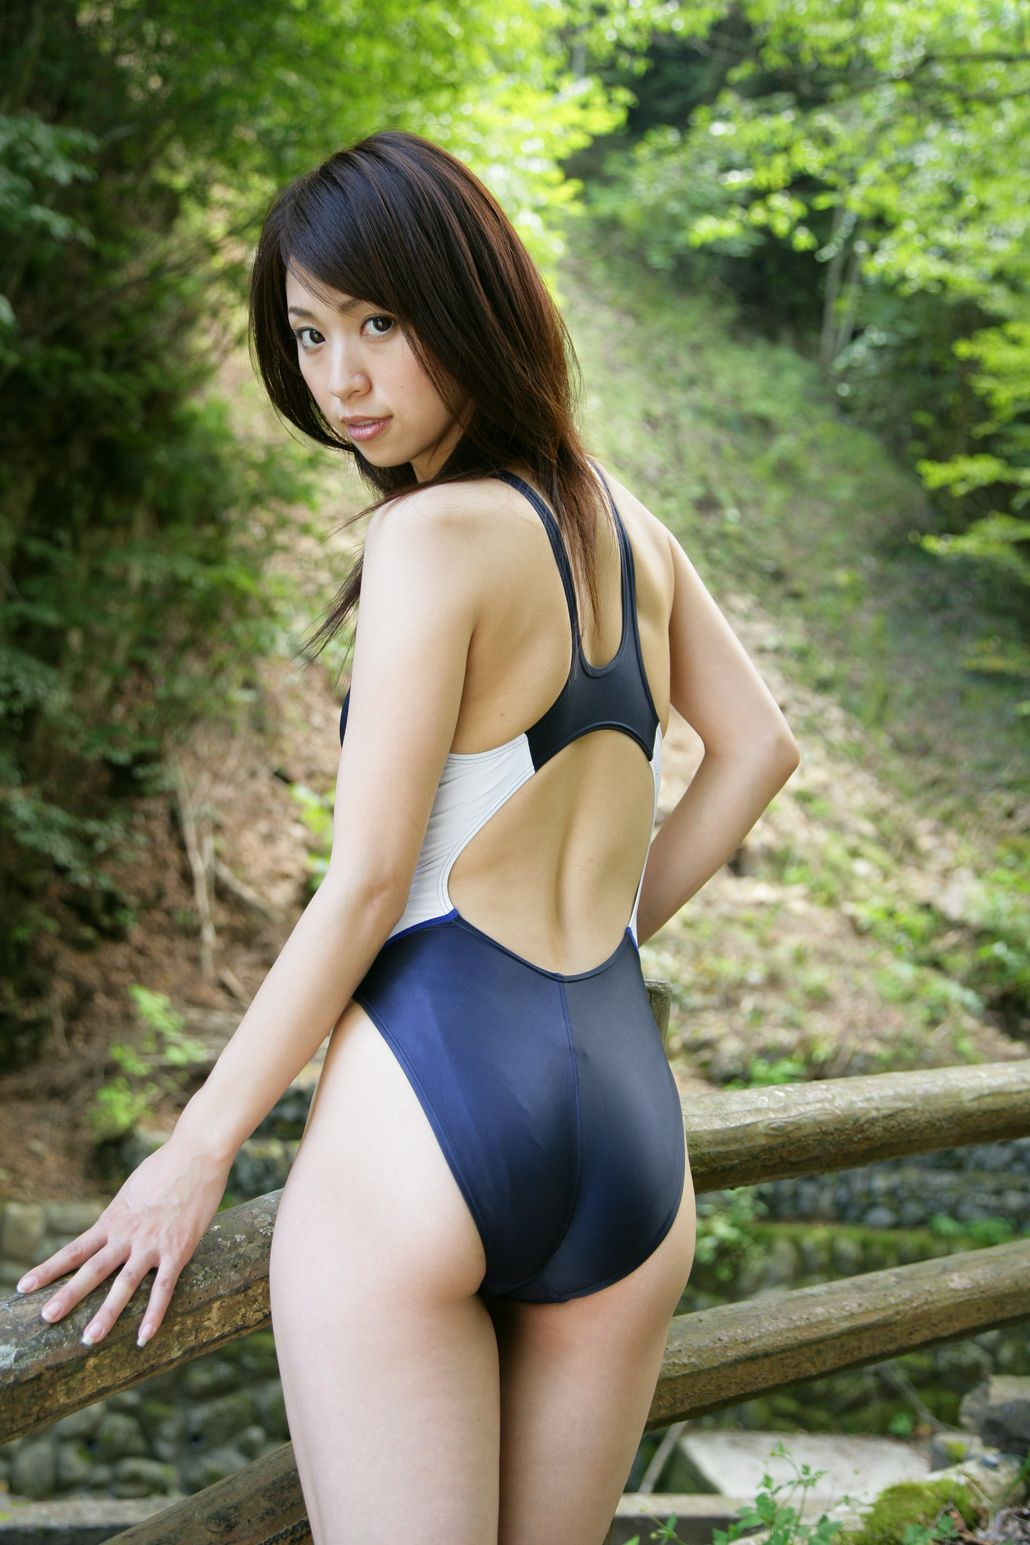 swimsuit pictures Asian